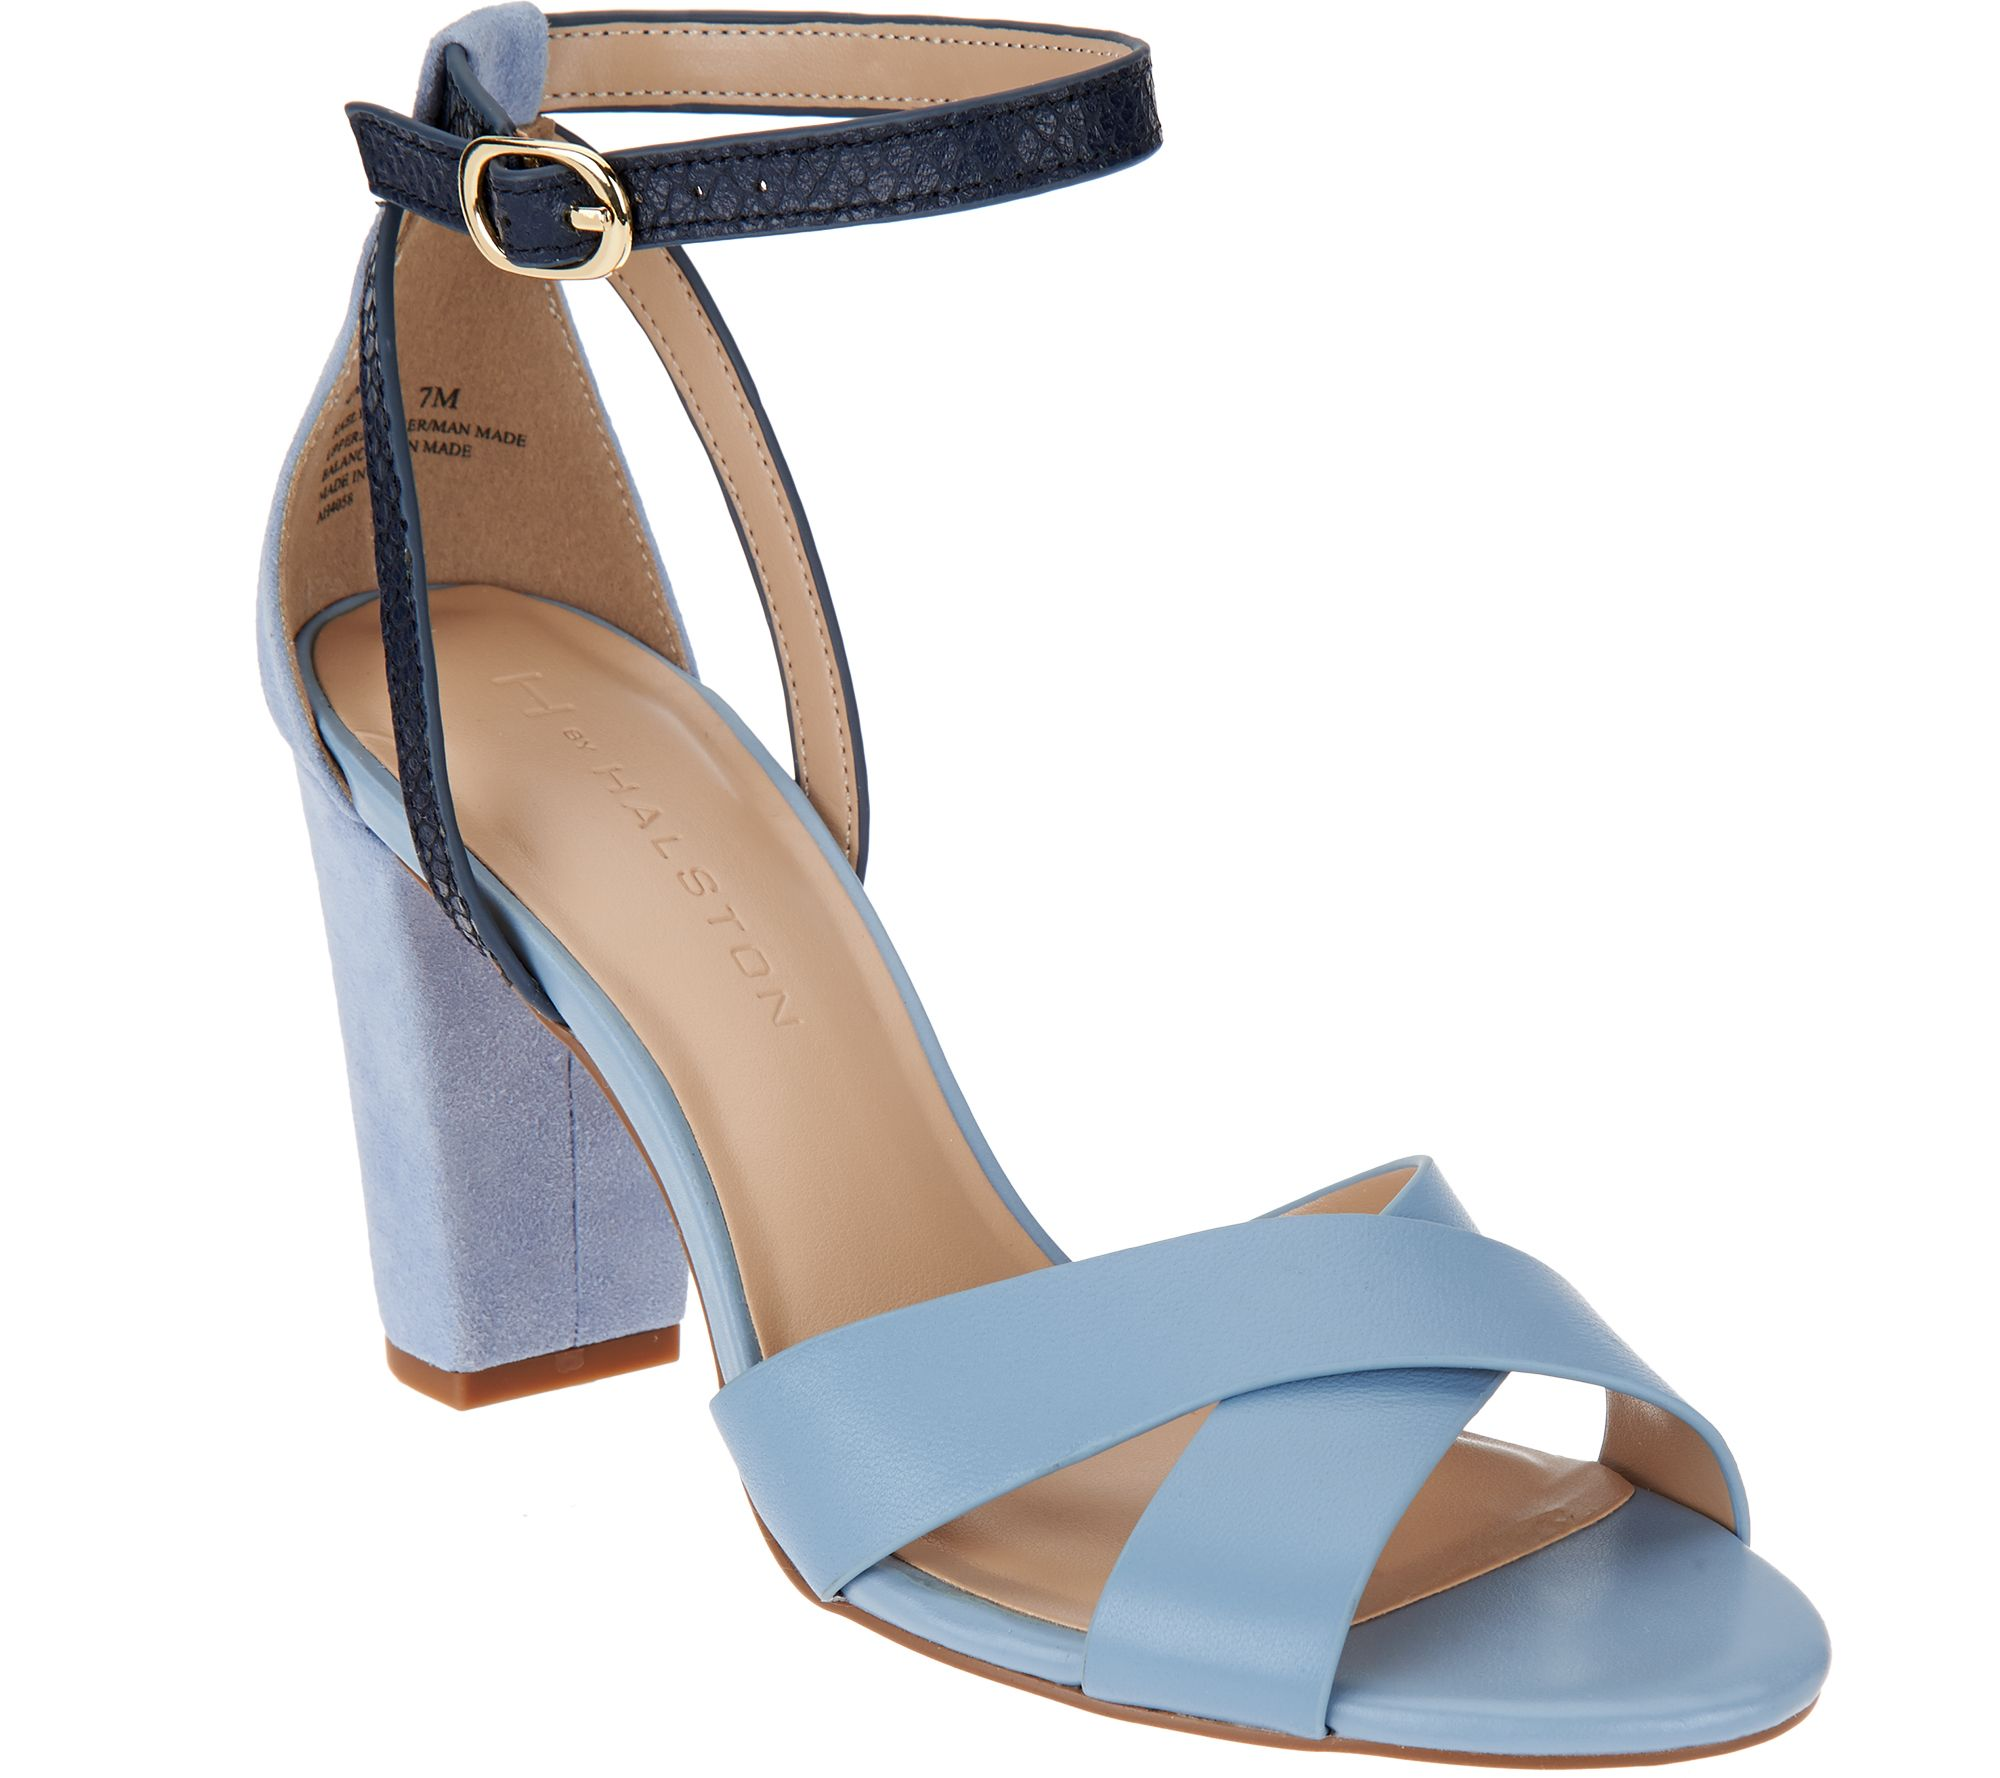 9a3436ed79a7b1 H by Halston Leather   Suede Strappy Block Heel Sandals - Kaelyn - Page 1 —  QVC.com